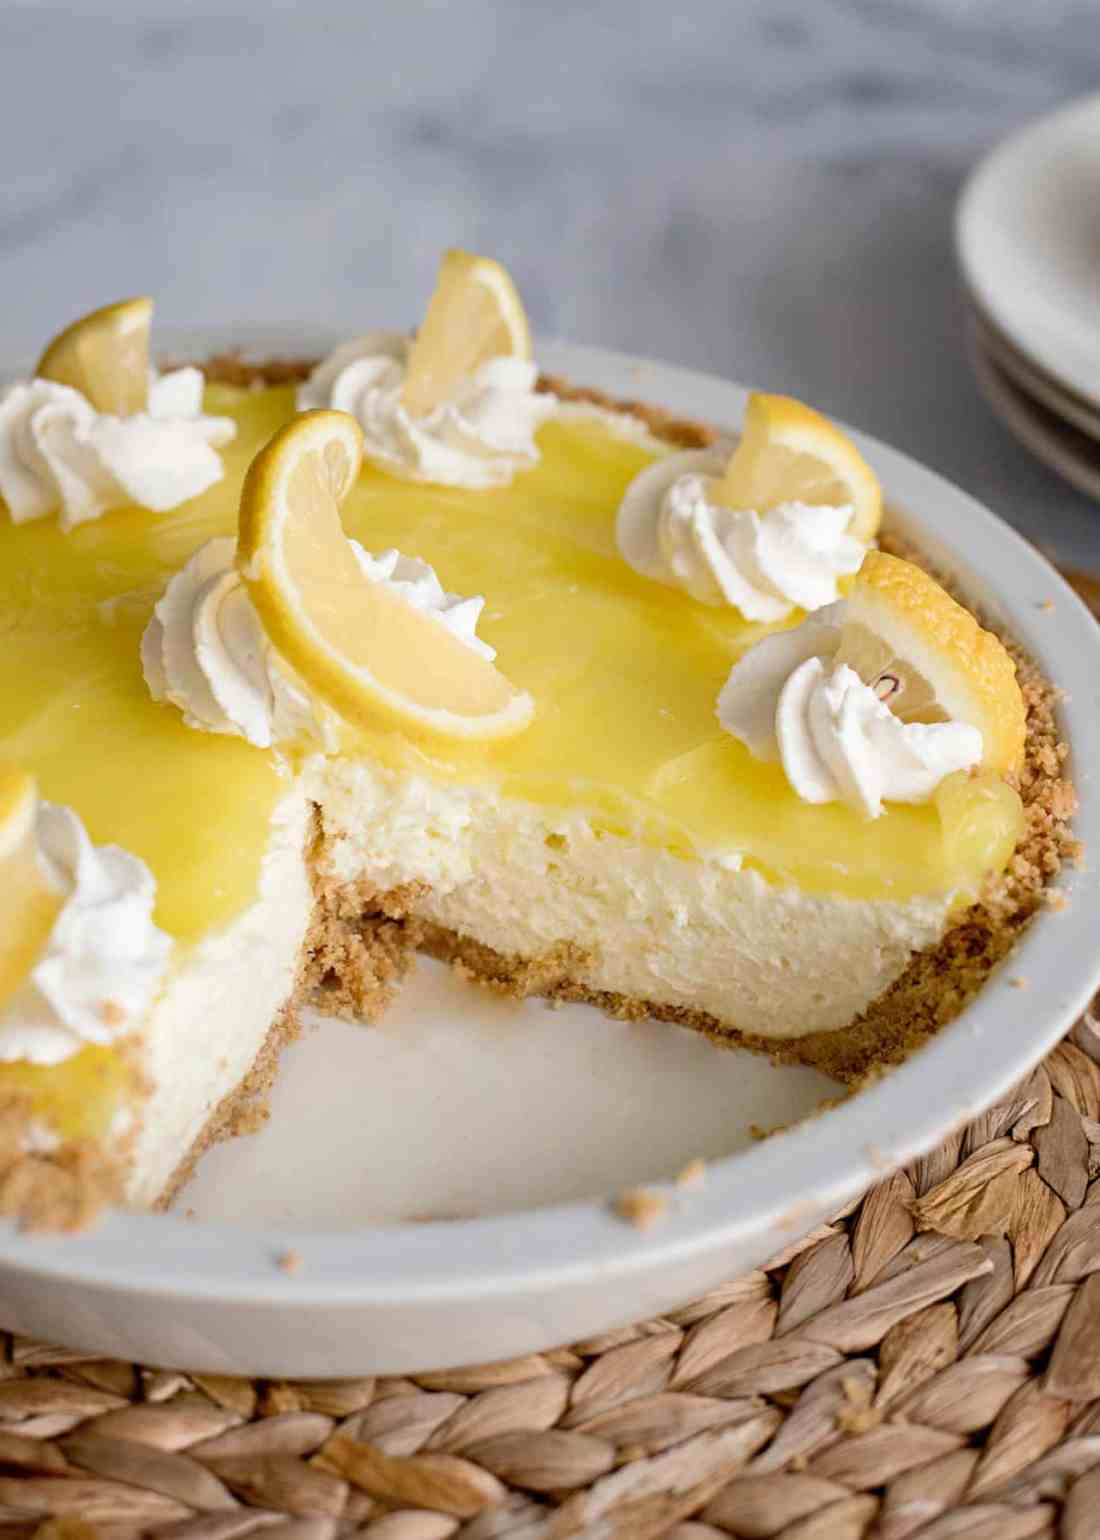 A delicious lemon cream pie with graham cracker crust and homemade whipped cream recipe. Can be made gluten free (and dairy free) with a few substitutions too!